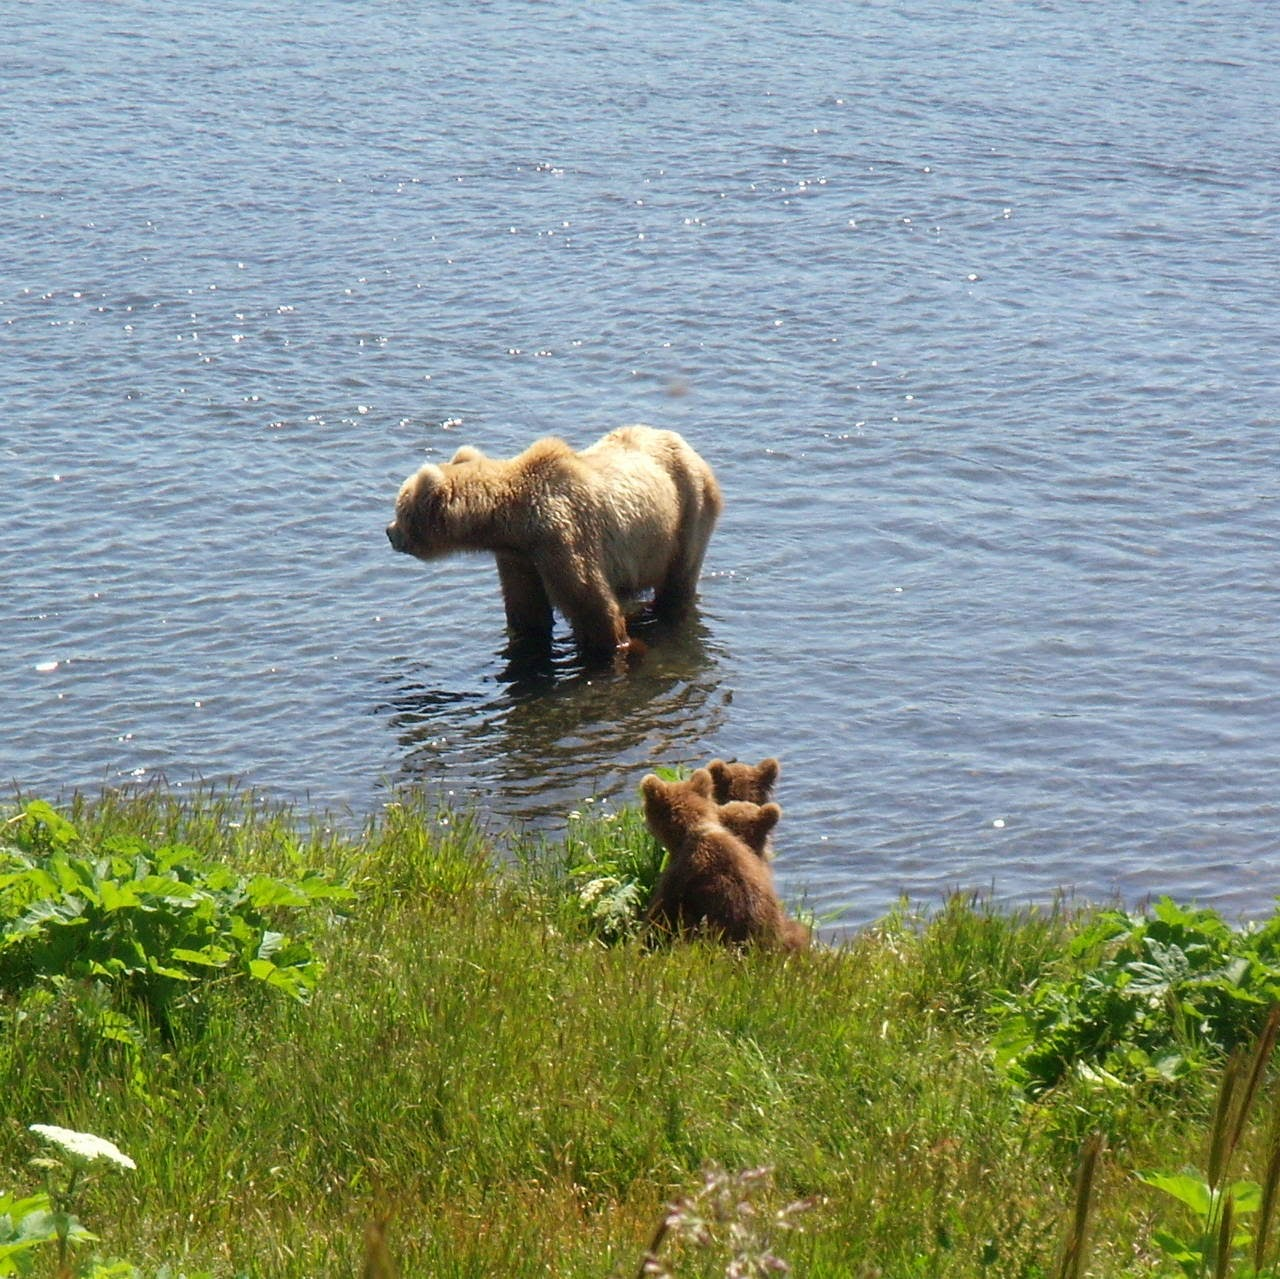 Funny animals of the week - 21 March 2014 (40 pics), funny animal pictures, baby bears wait for their mommy on the river